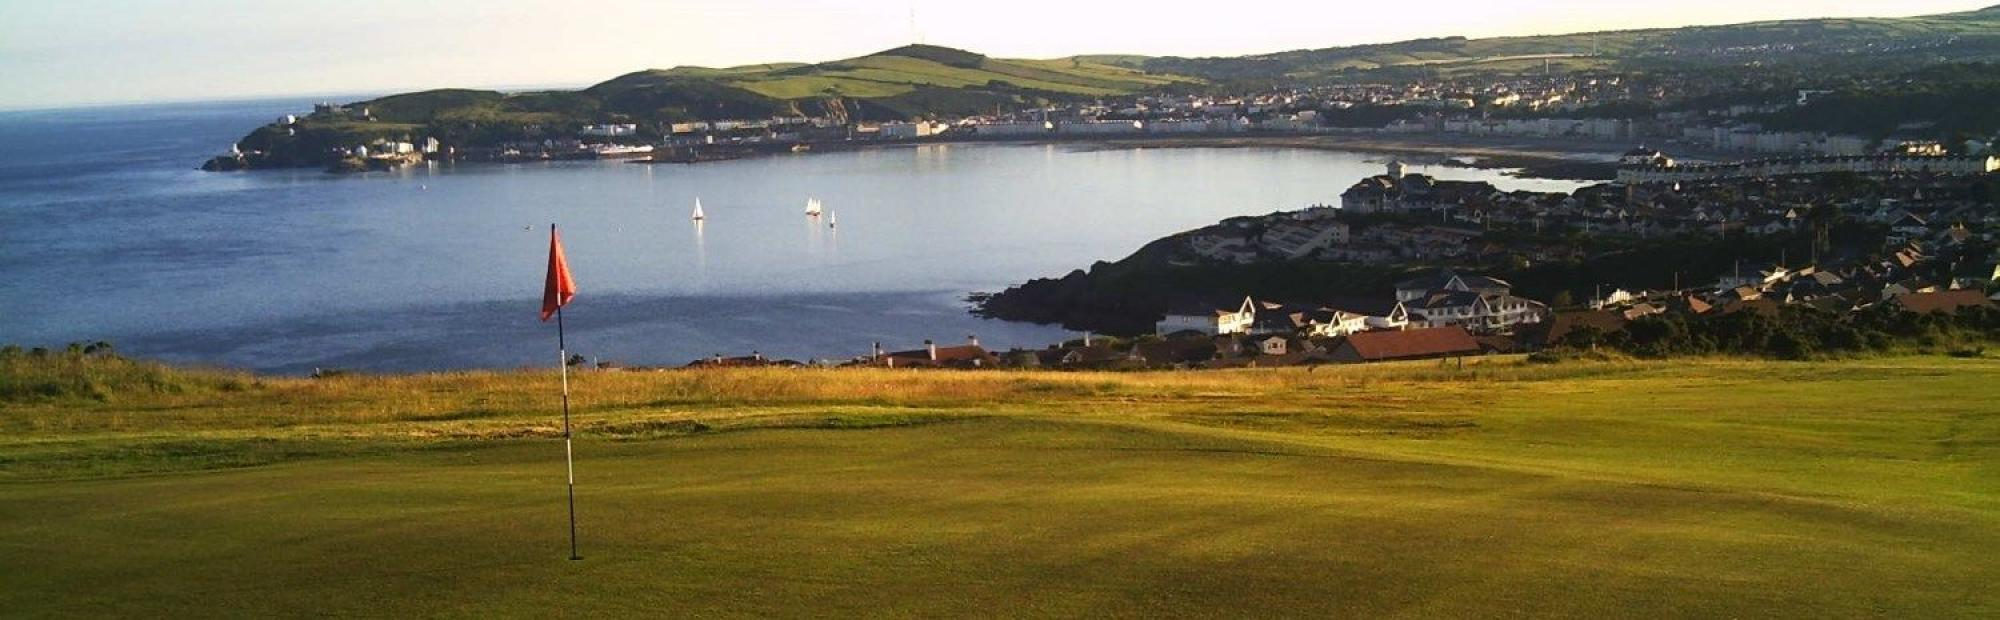 King Edward Bay Golf Club boasts several of the most popular golf course in Isle of Man